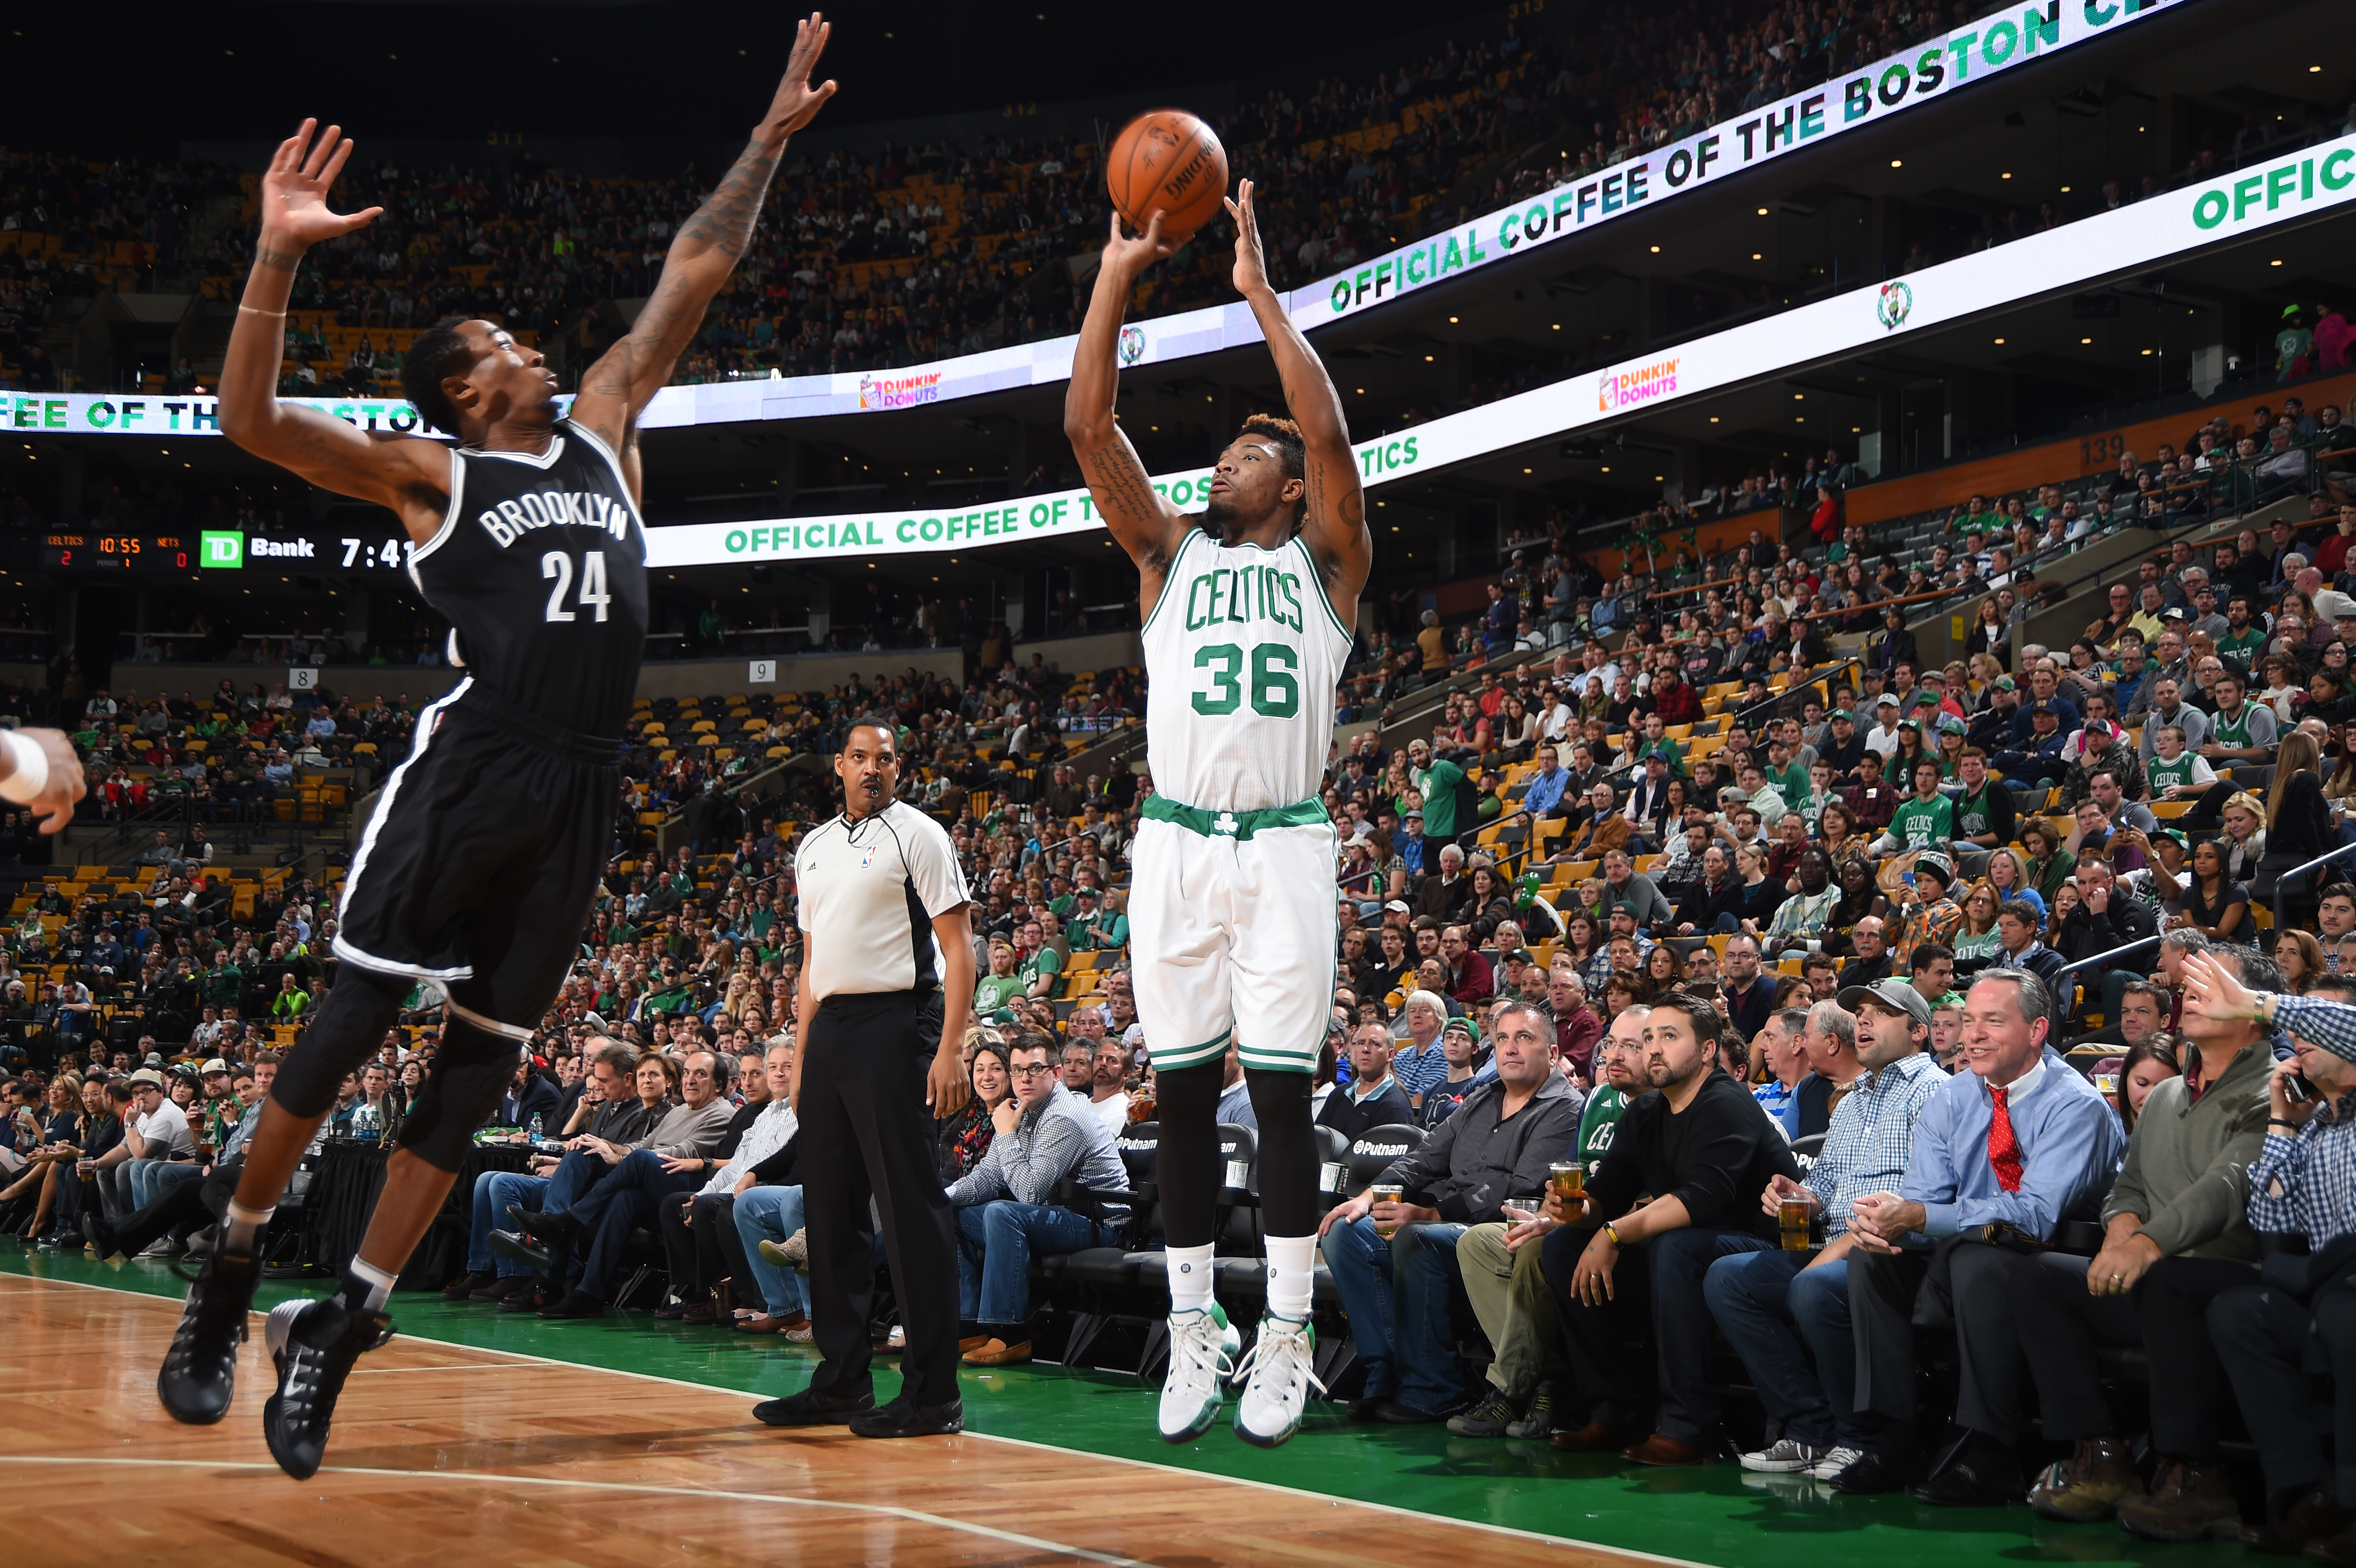 BOSTON, MA - NOVEMBER 20: Marcus Smart #36 of the Boston Celtics shoots the ball against the Brooklyn Nets on November 20, 2015 at the TD Garden in Boston, Massachusetts.  (Photo by Steve Babineau/NBAE via Getty Images)